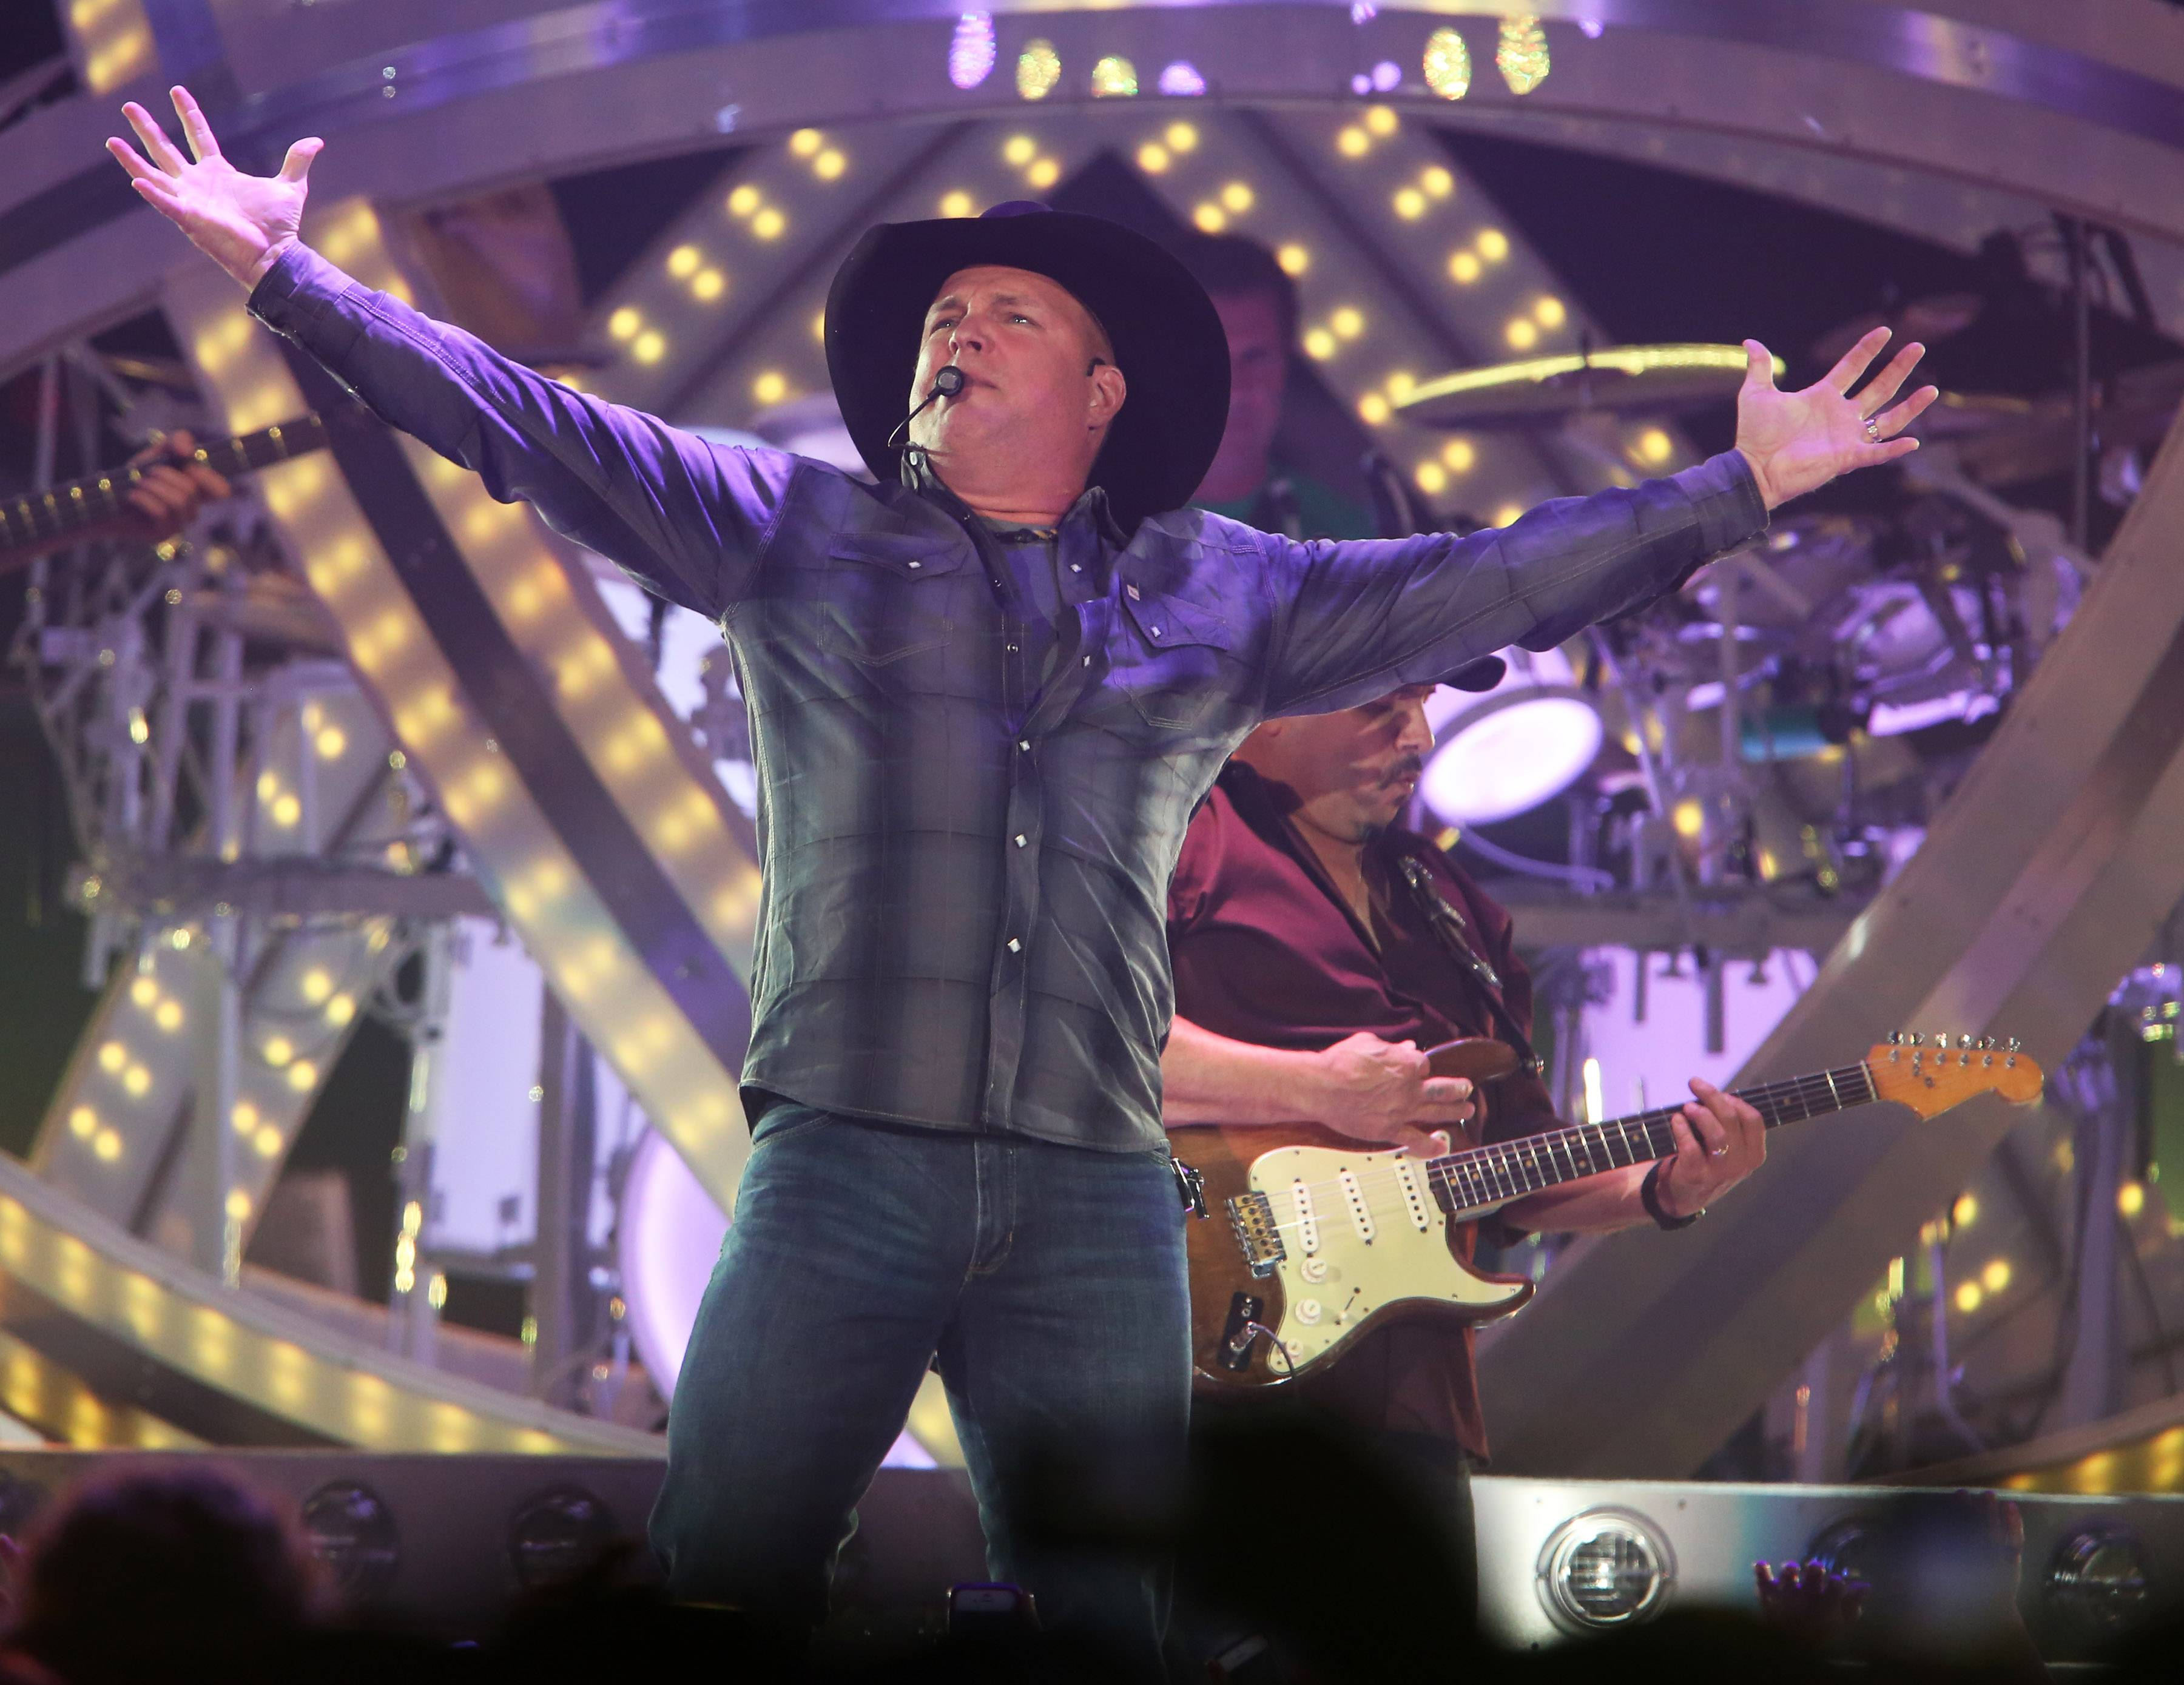 Country music star Garth Brooks performs at Allstate Arena in Rosemont last year. Rosemont officials argue that some of the details of the village's bid to bring Brooks to the arena need to be kept secret for competitive reasons.